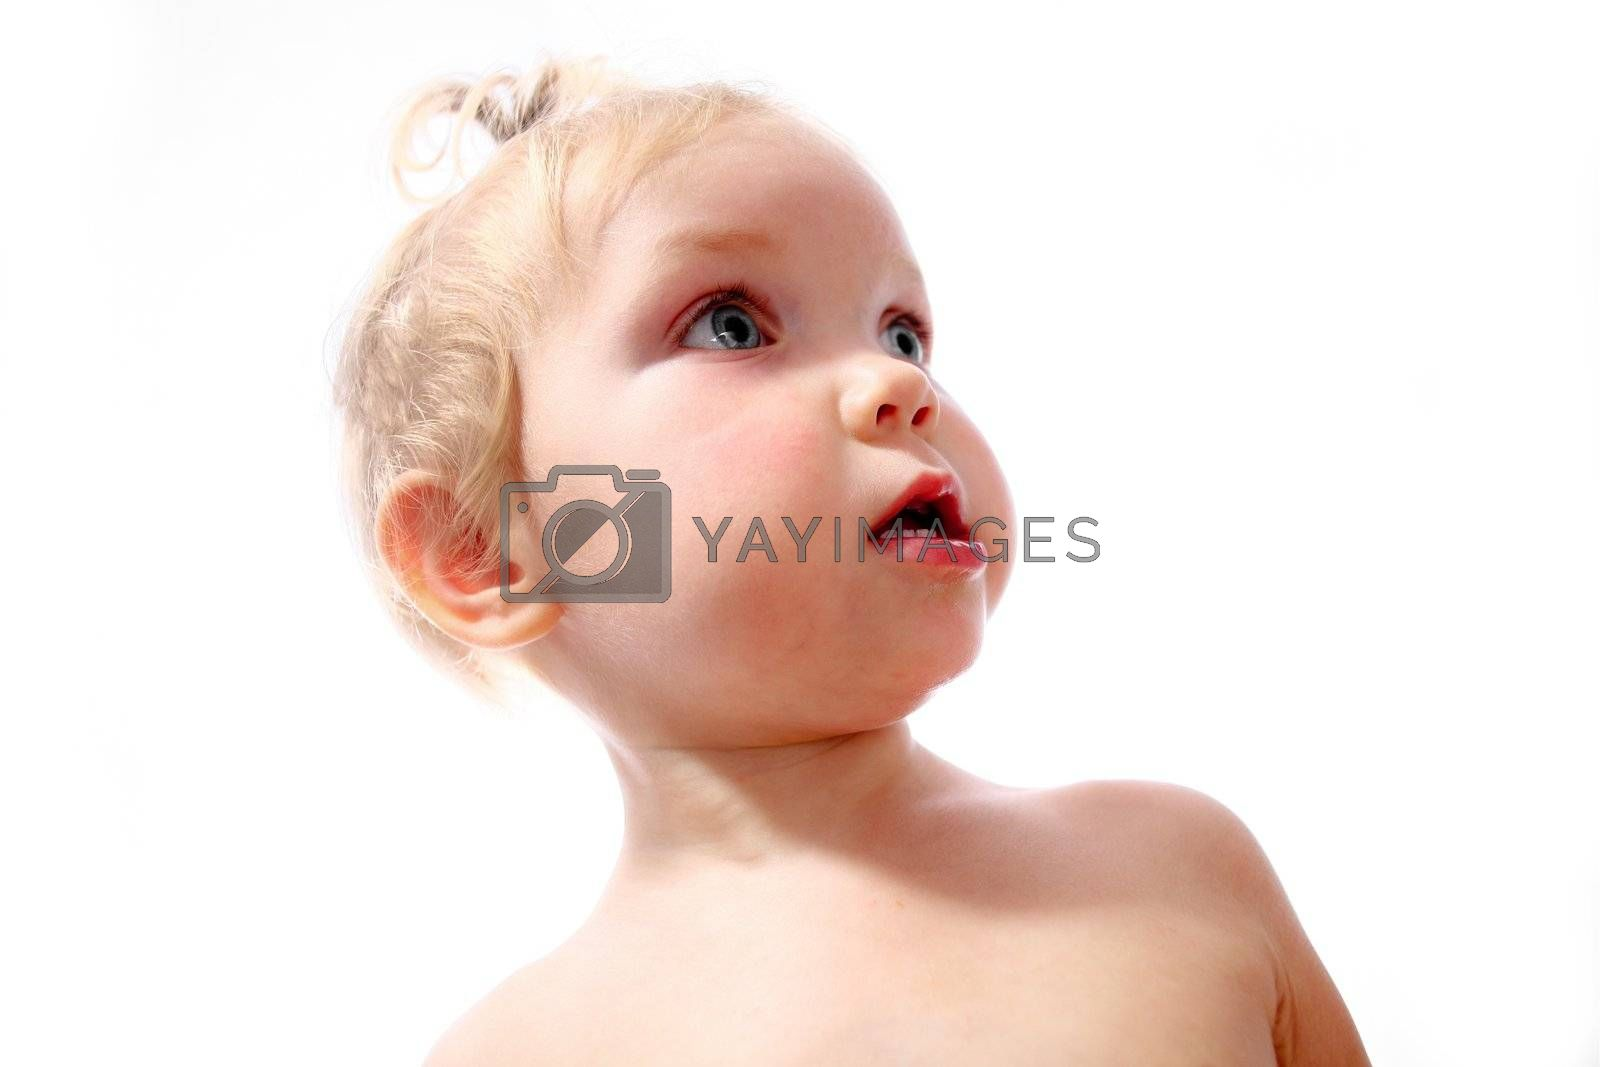 An image of baby girl. Portrait close-up